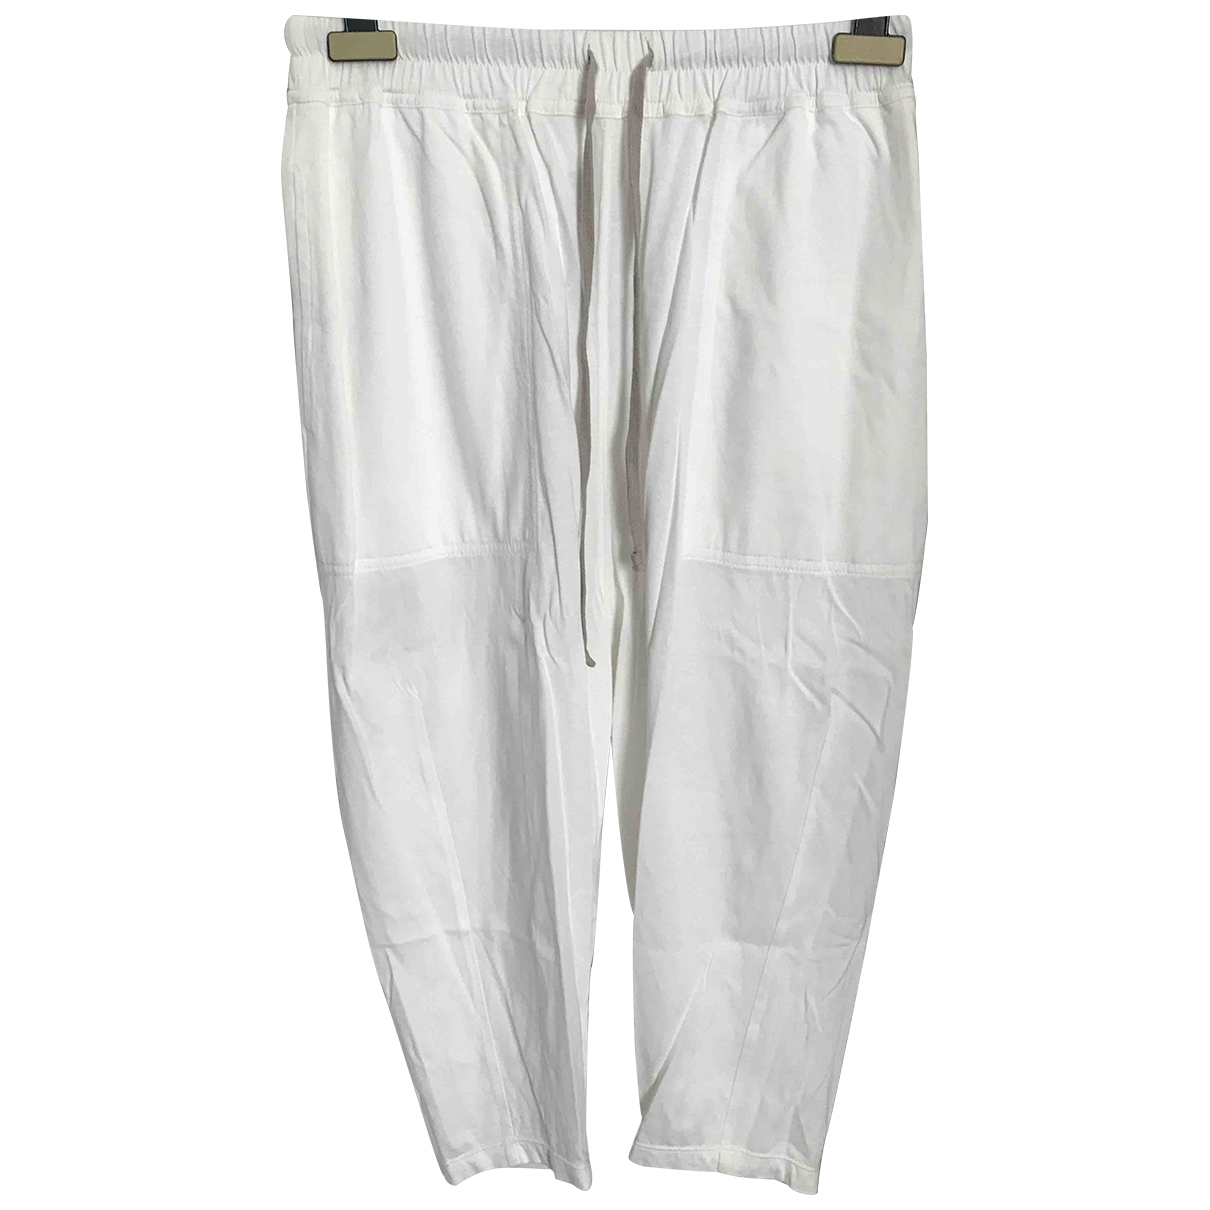 Rick Owens Drkshdw \N White Cotton Trousers for Women S International